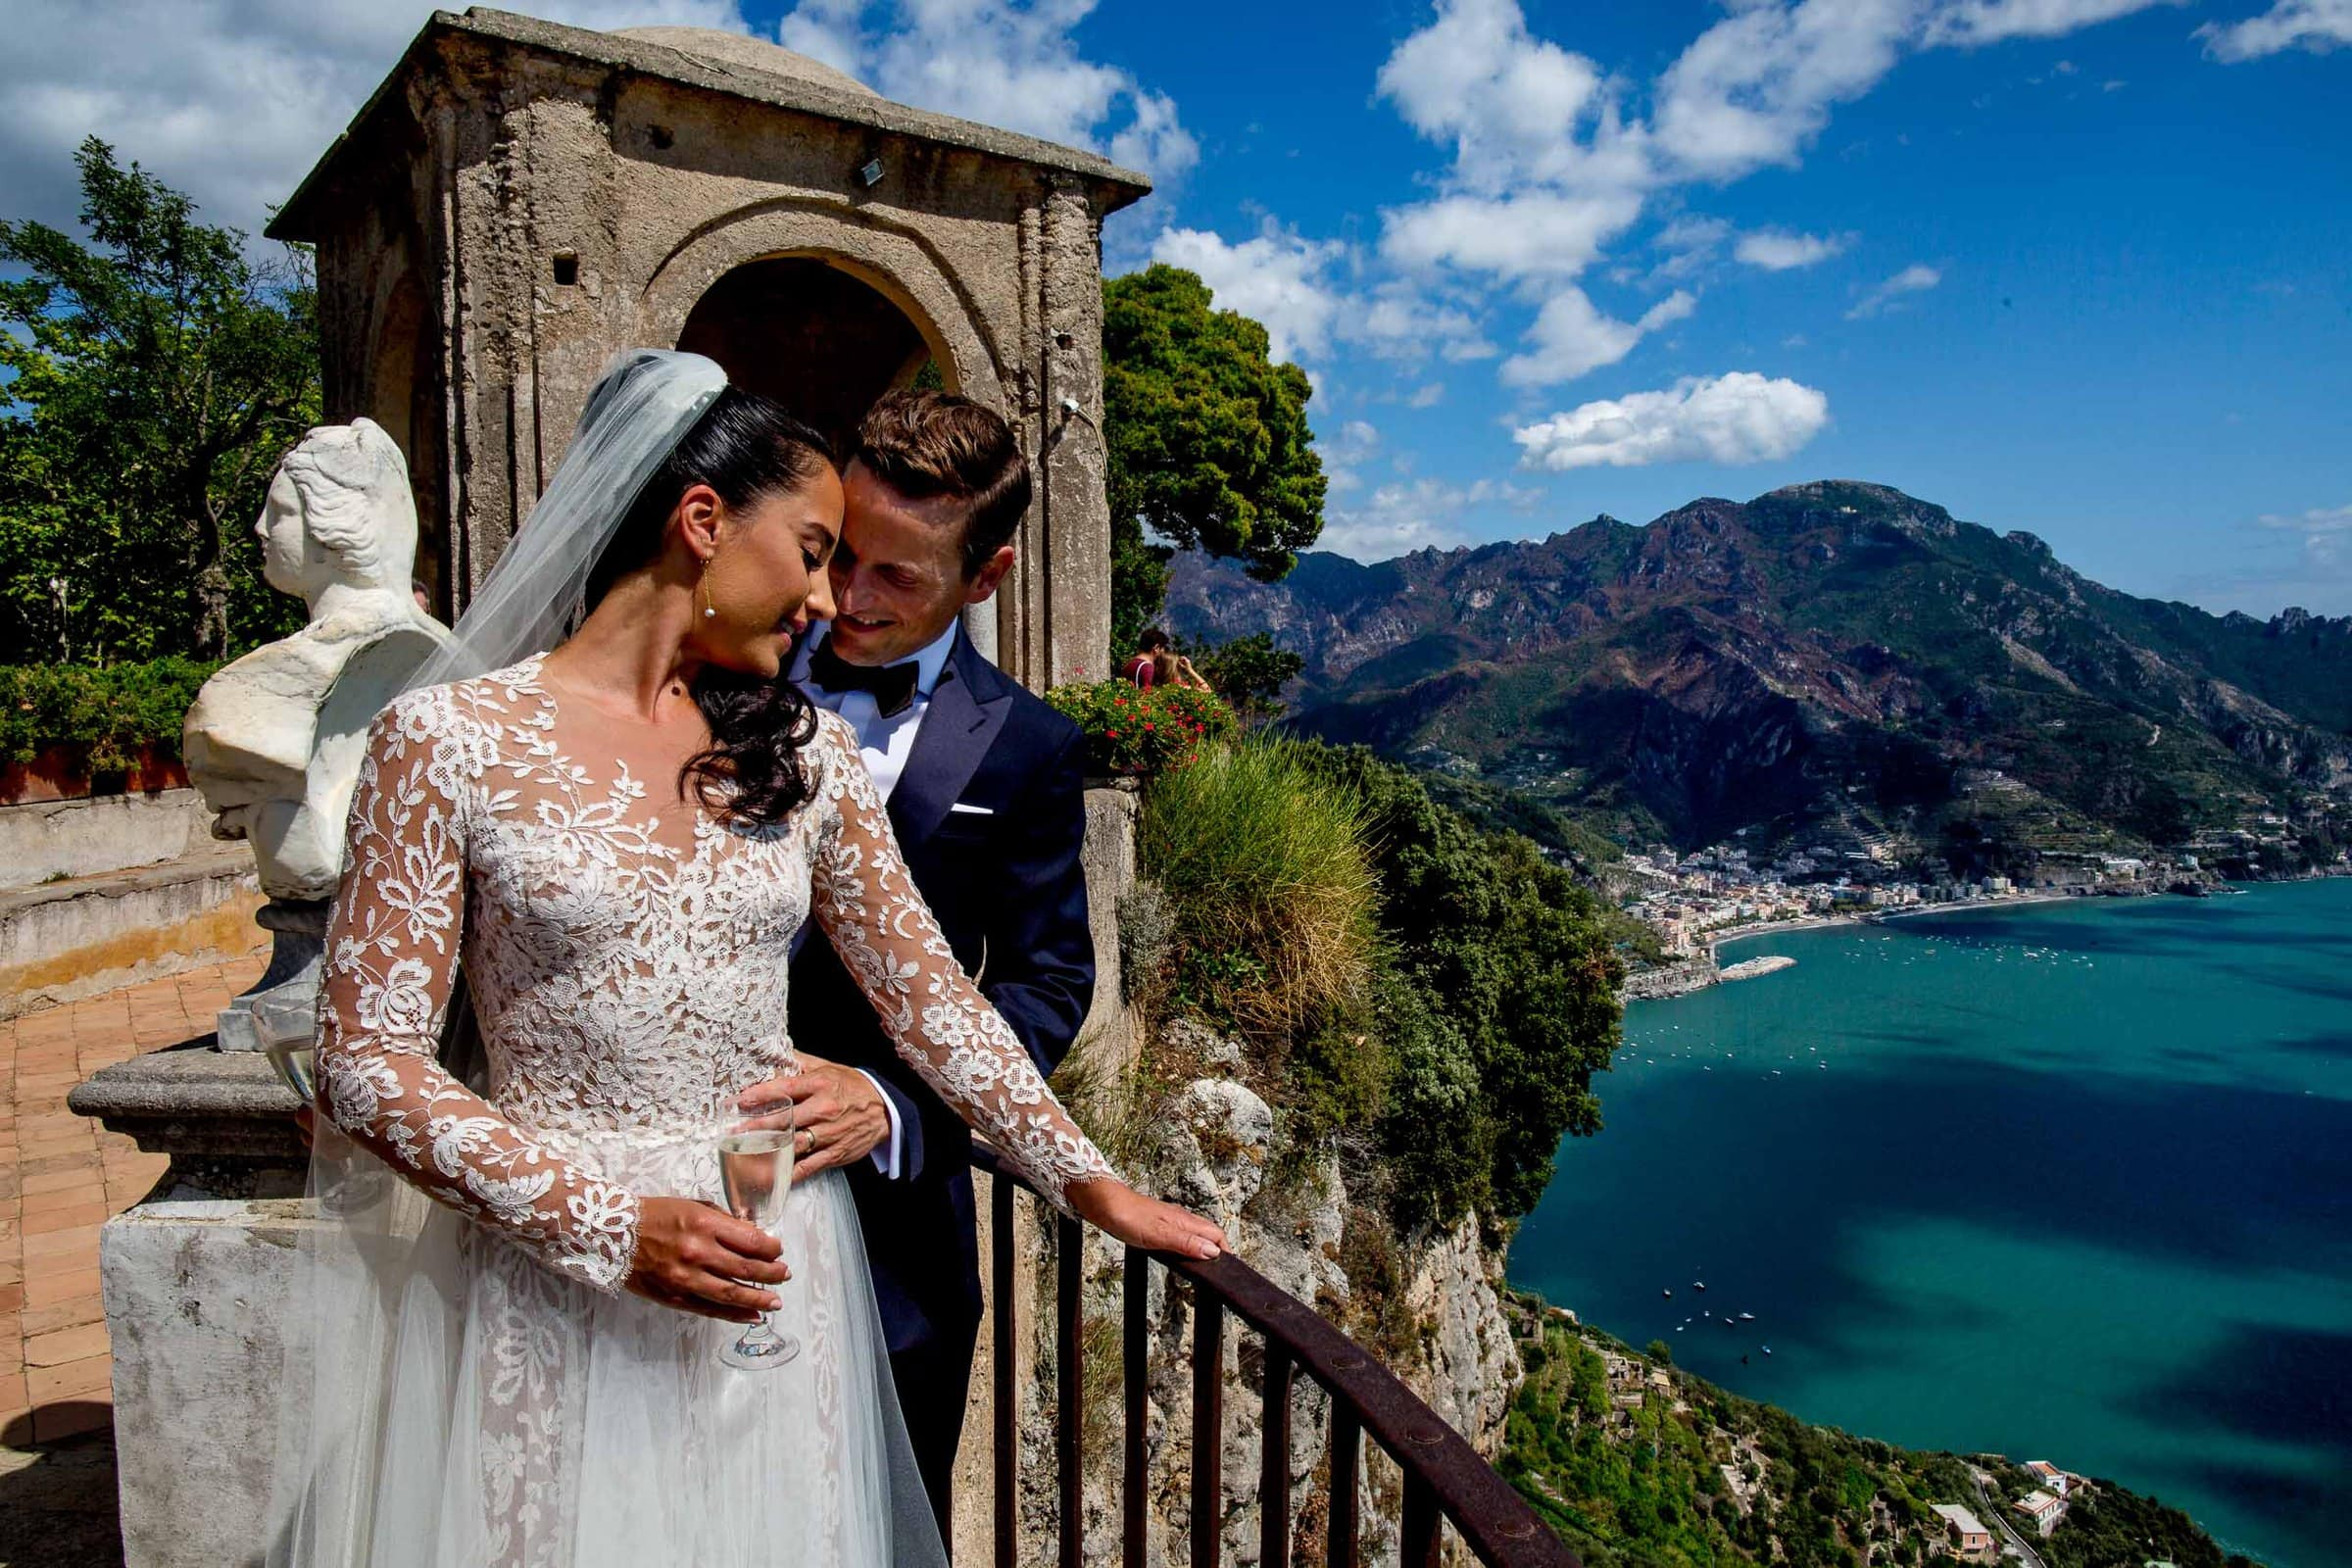 Gorgeous bride and groom portrait at Villa Cimbrone for their Ravello wedding elopement along the Amafi coast in Italy.